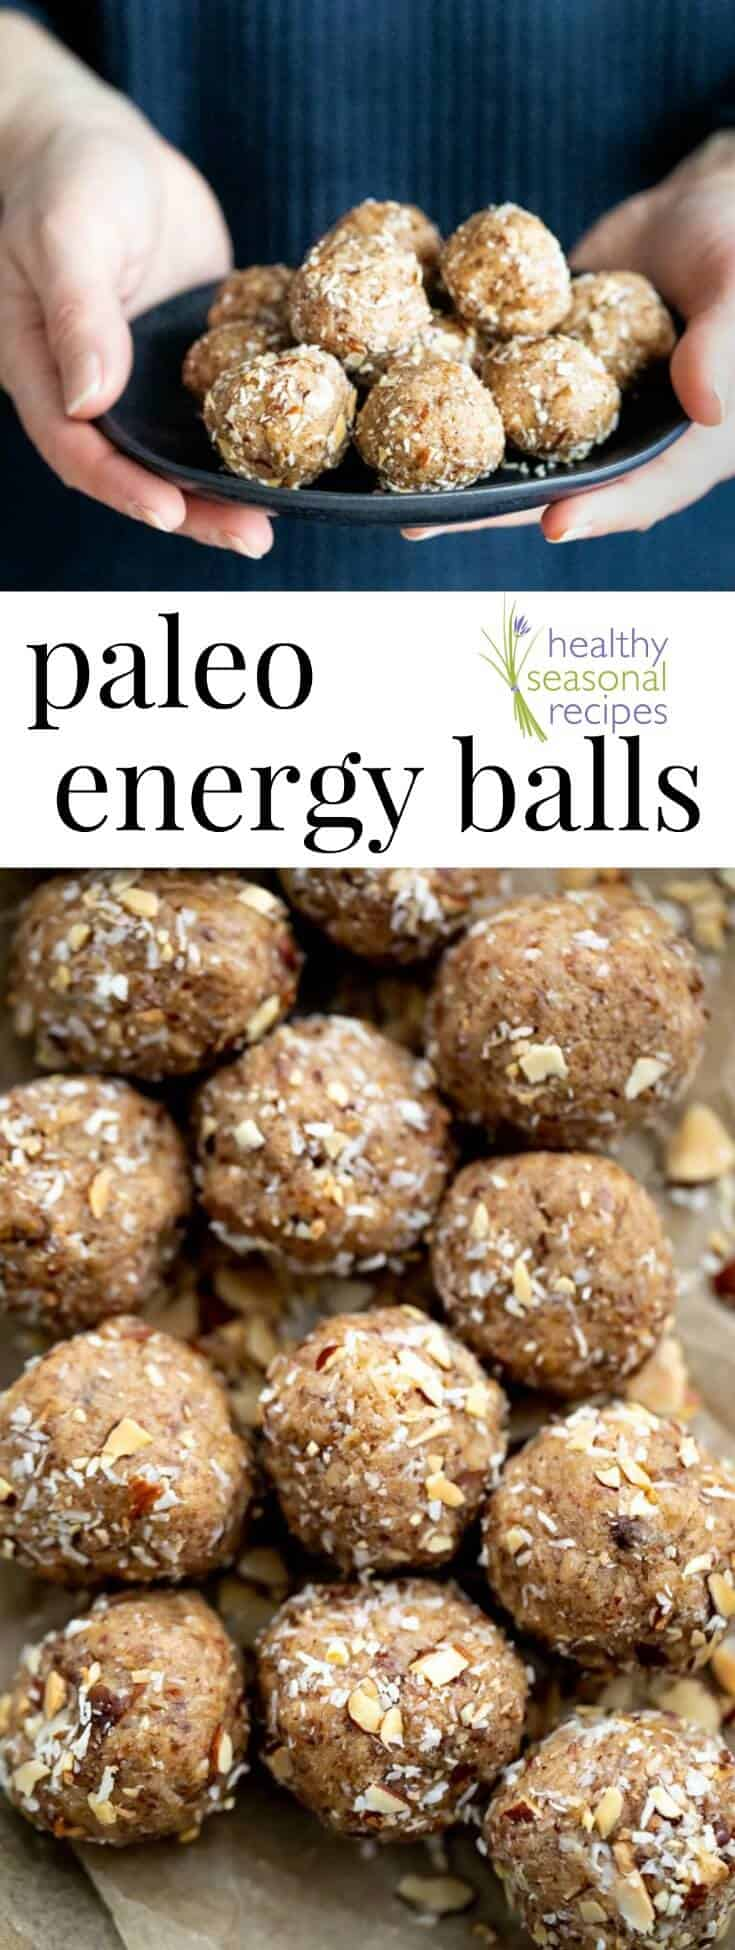 Paleo Energy Balls, made without refined sugar, they're grain-free, gluten-free and dairy-free. They are made with coconut flour, almond flour, dates and almond butter with a touch of maple syrup. They make a great healthy snack! #snack #energyball #paleo #primal #grainfree #wheatfree #dairyfree #healthy